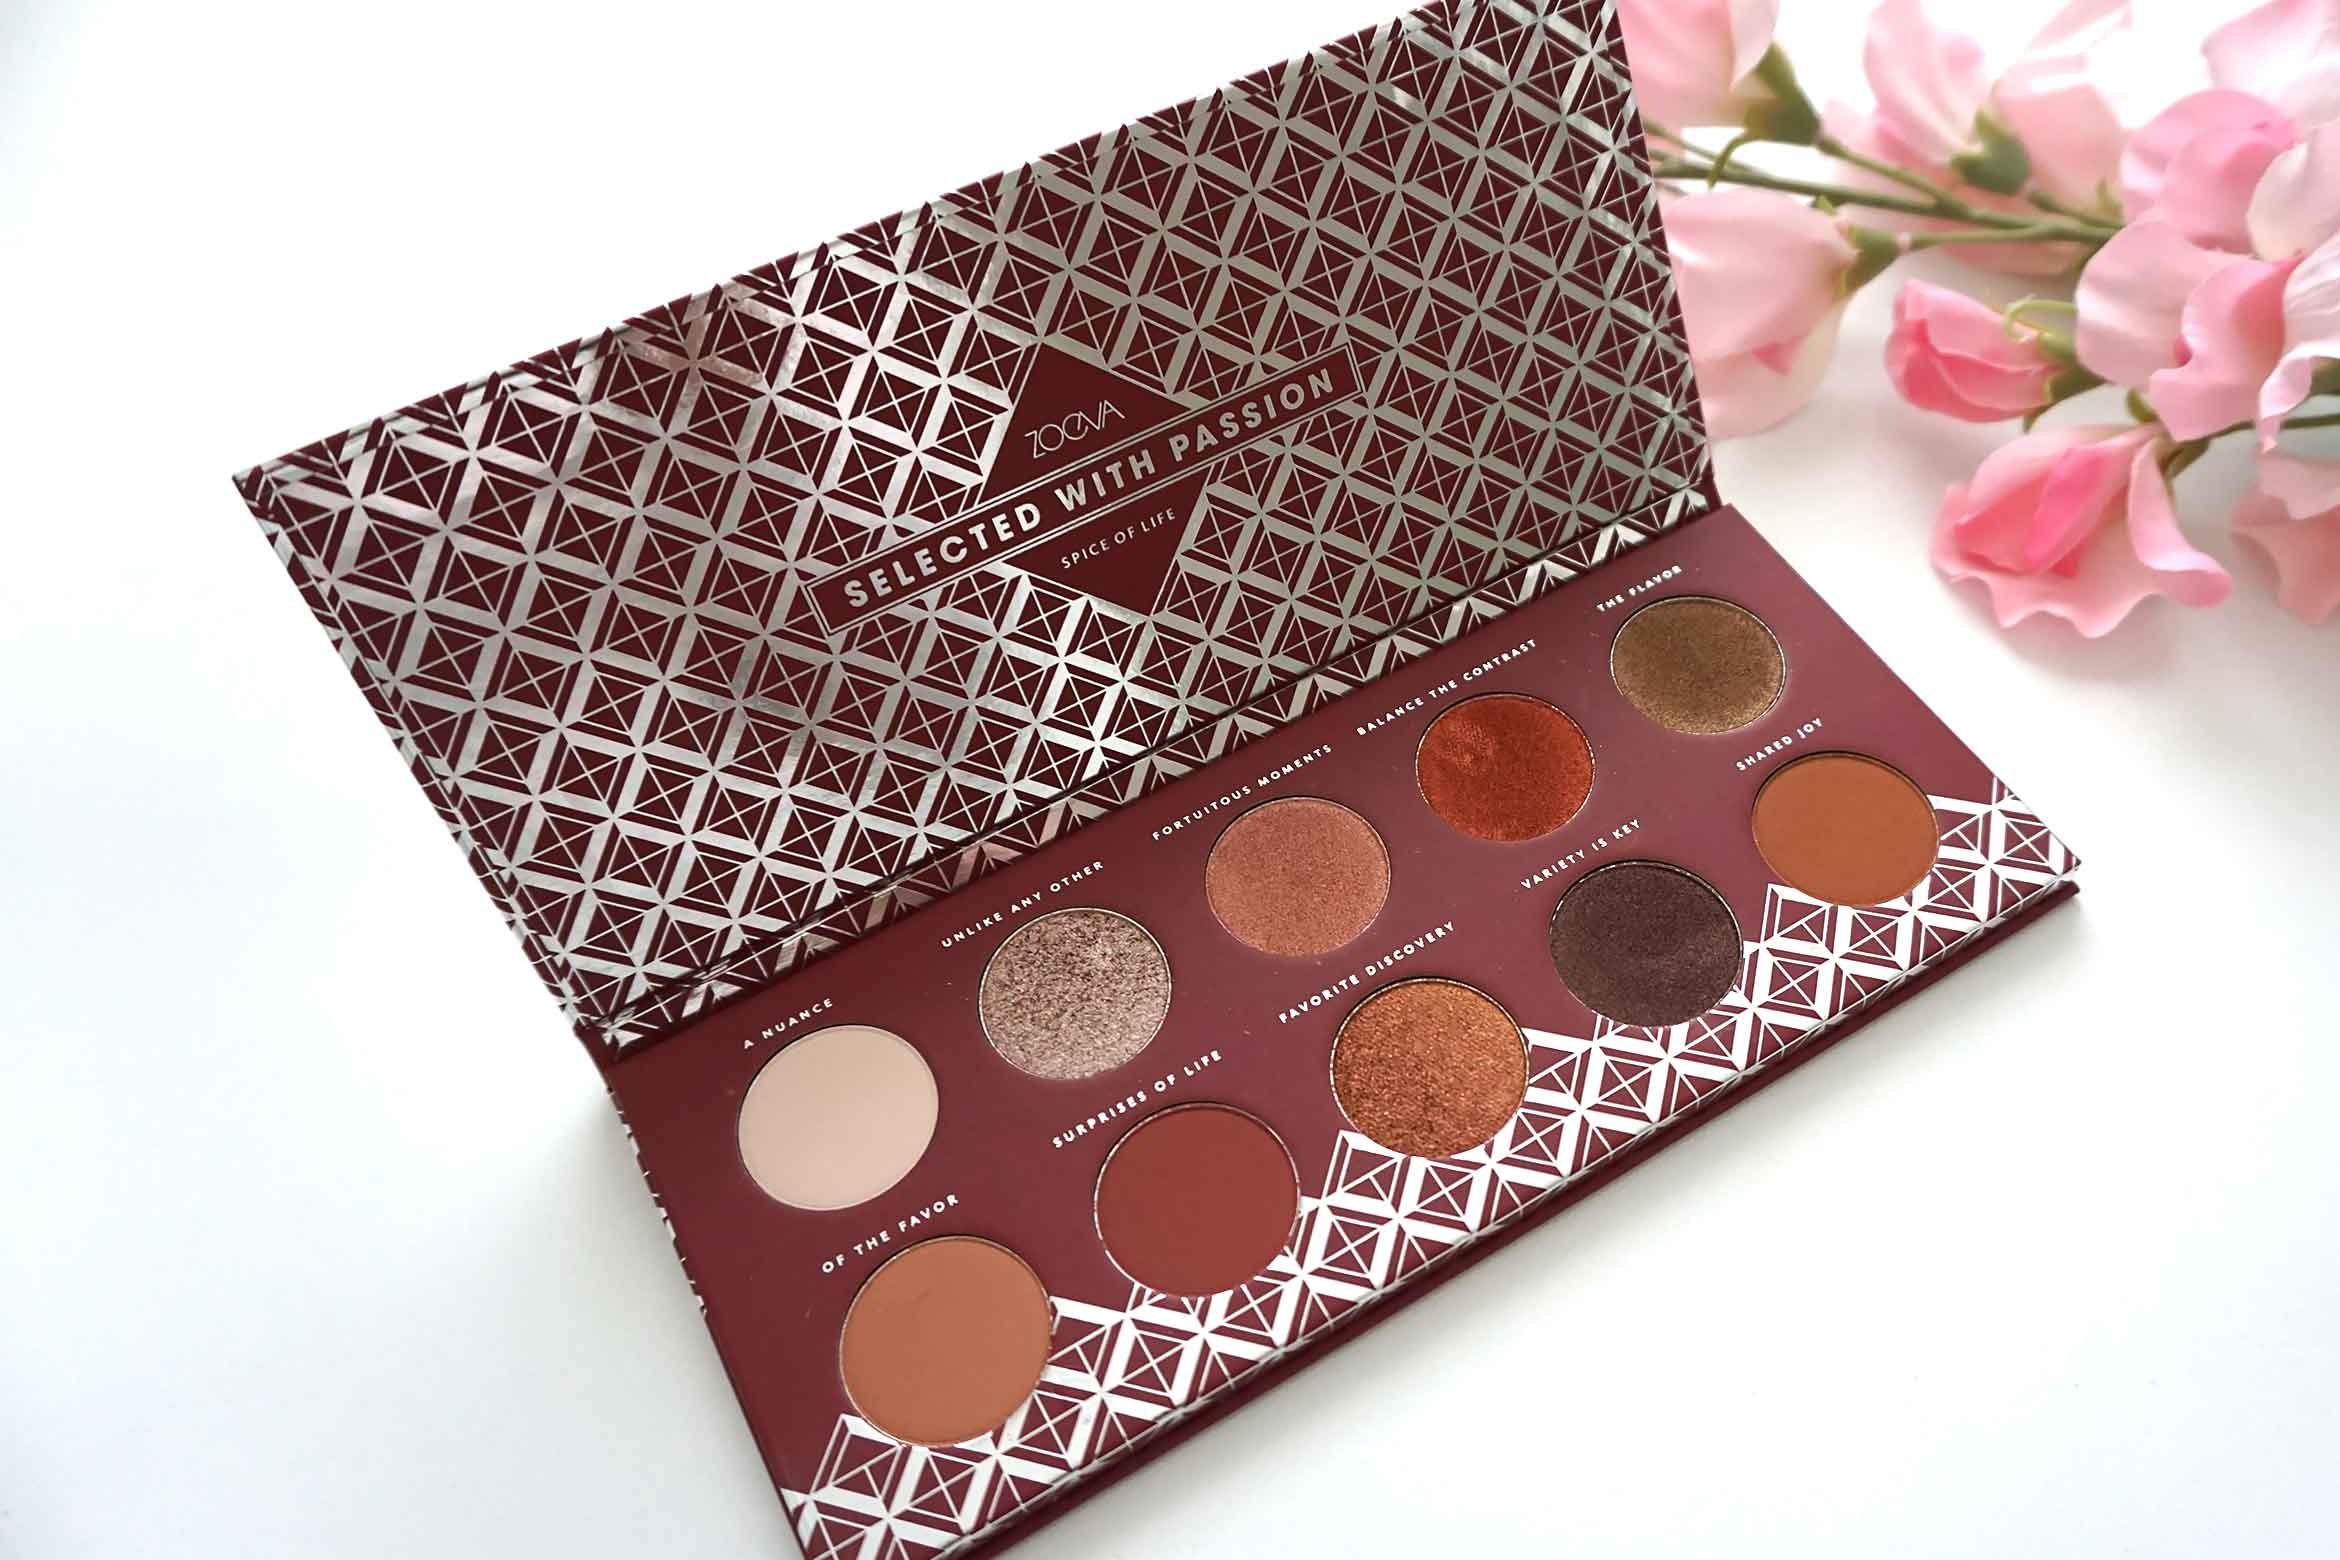 Zoeva-spice-of-life-eyeshadow-palette-review-4